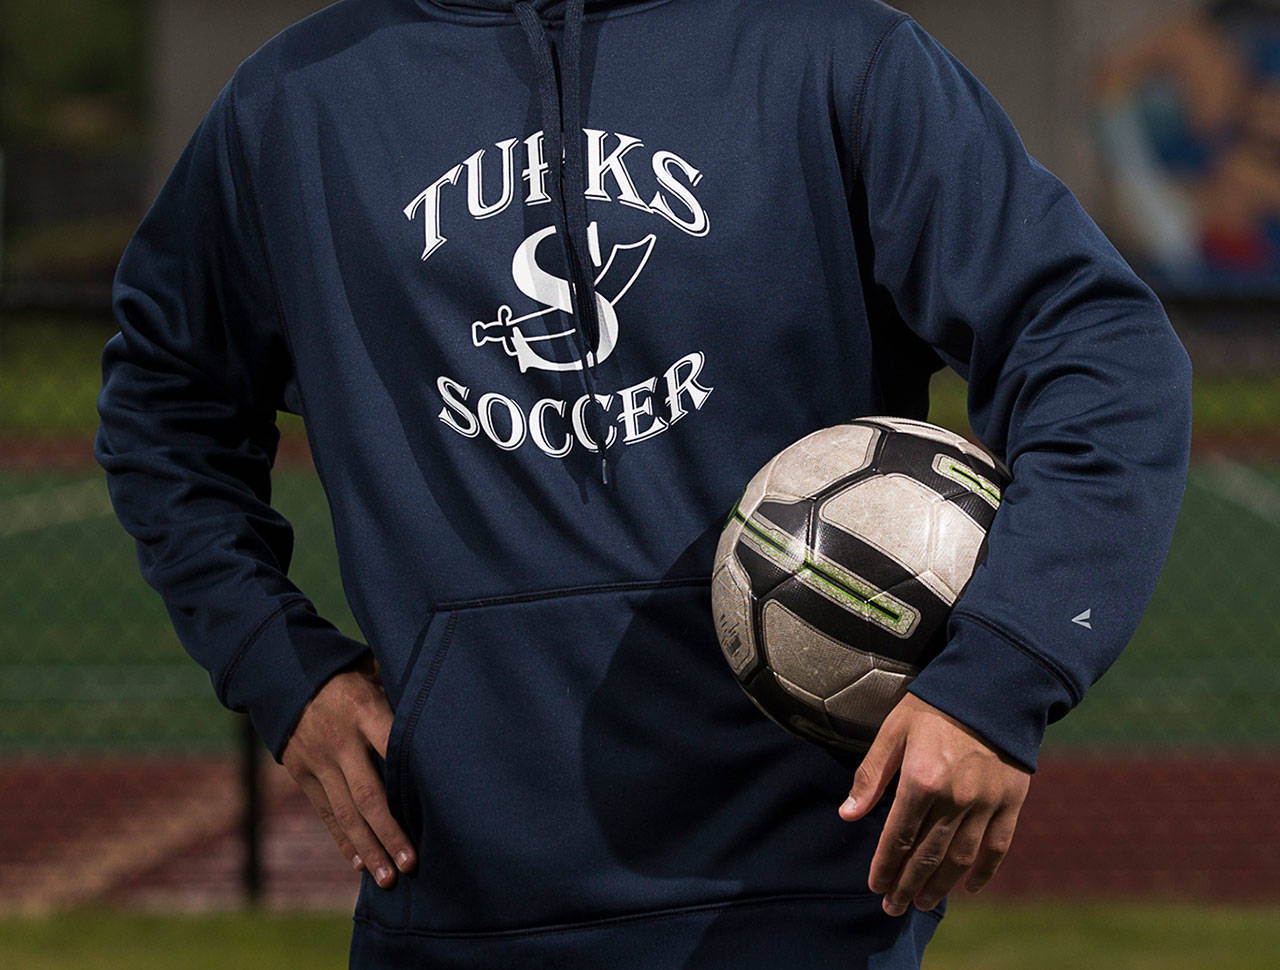 Sultan High School's sports teams are known as the Turks. (Andy Bronson / Herald file)